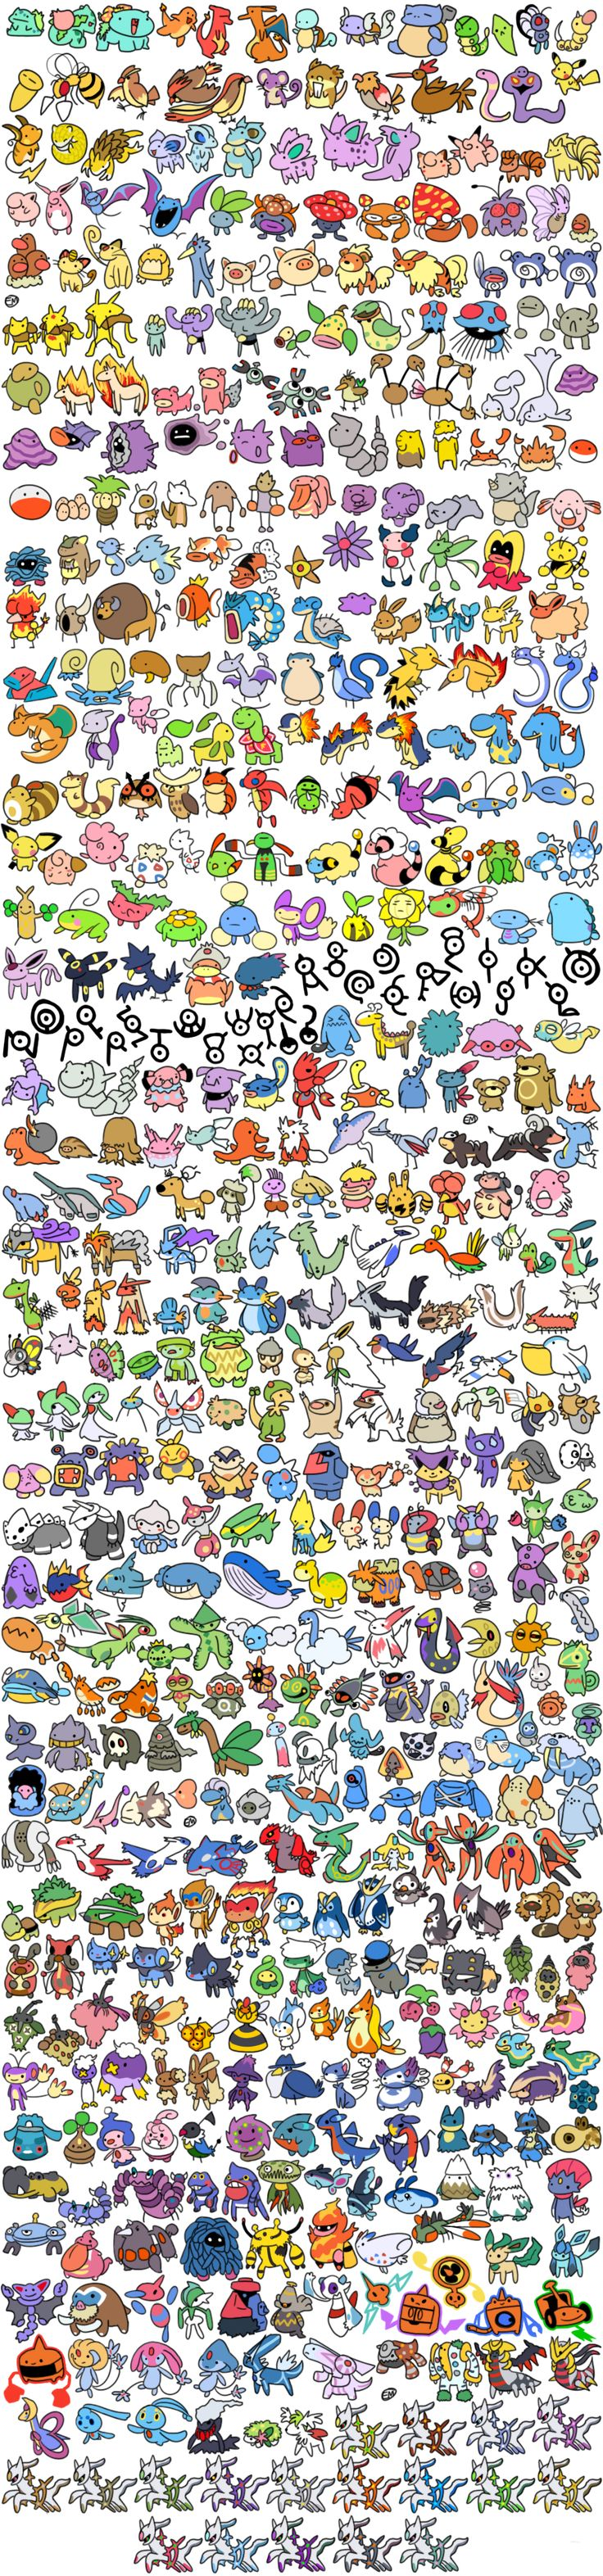 ALL of the Pokémon Chibi, Generations 1-5, By OneEyedMe on DeviantART